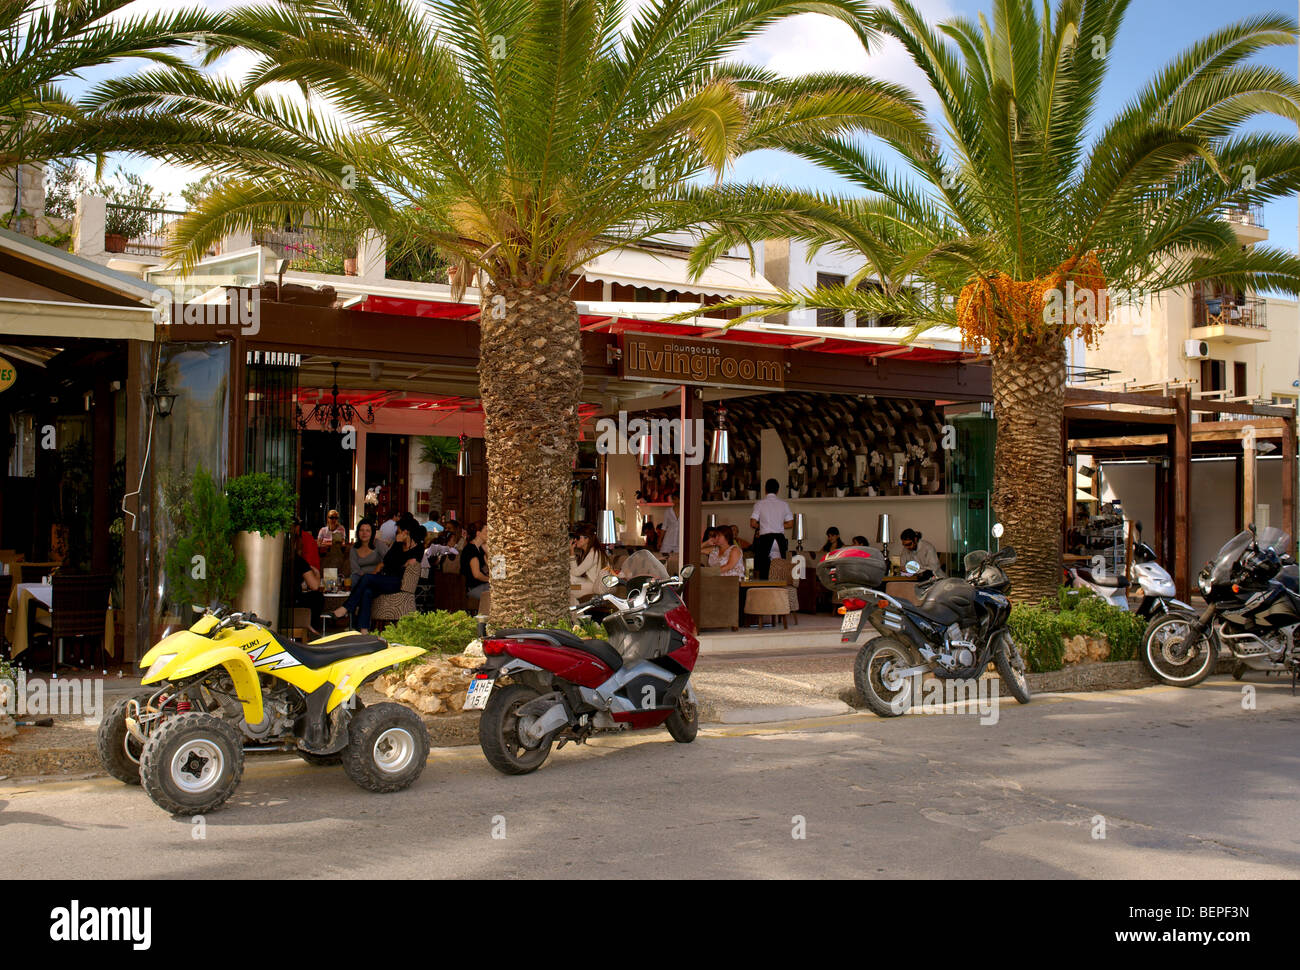 Crowded Living Room Caf Bar With Motorbikes And Palm Trees Rethymnon Crete Greece